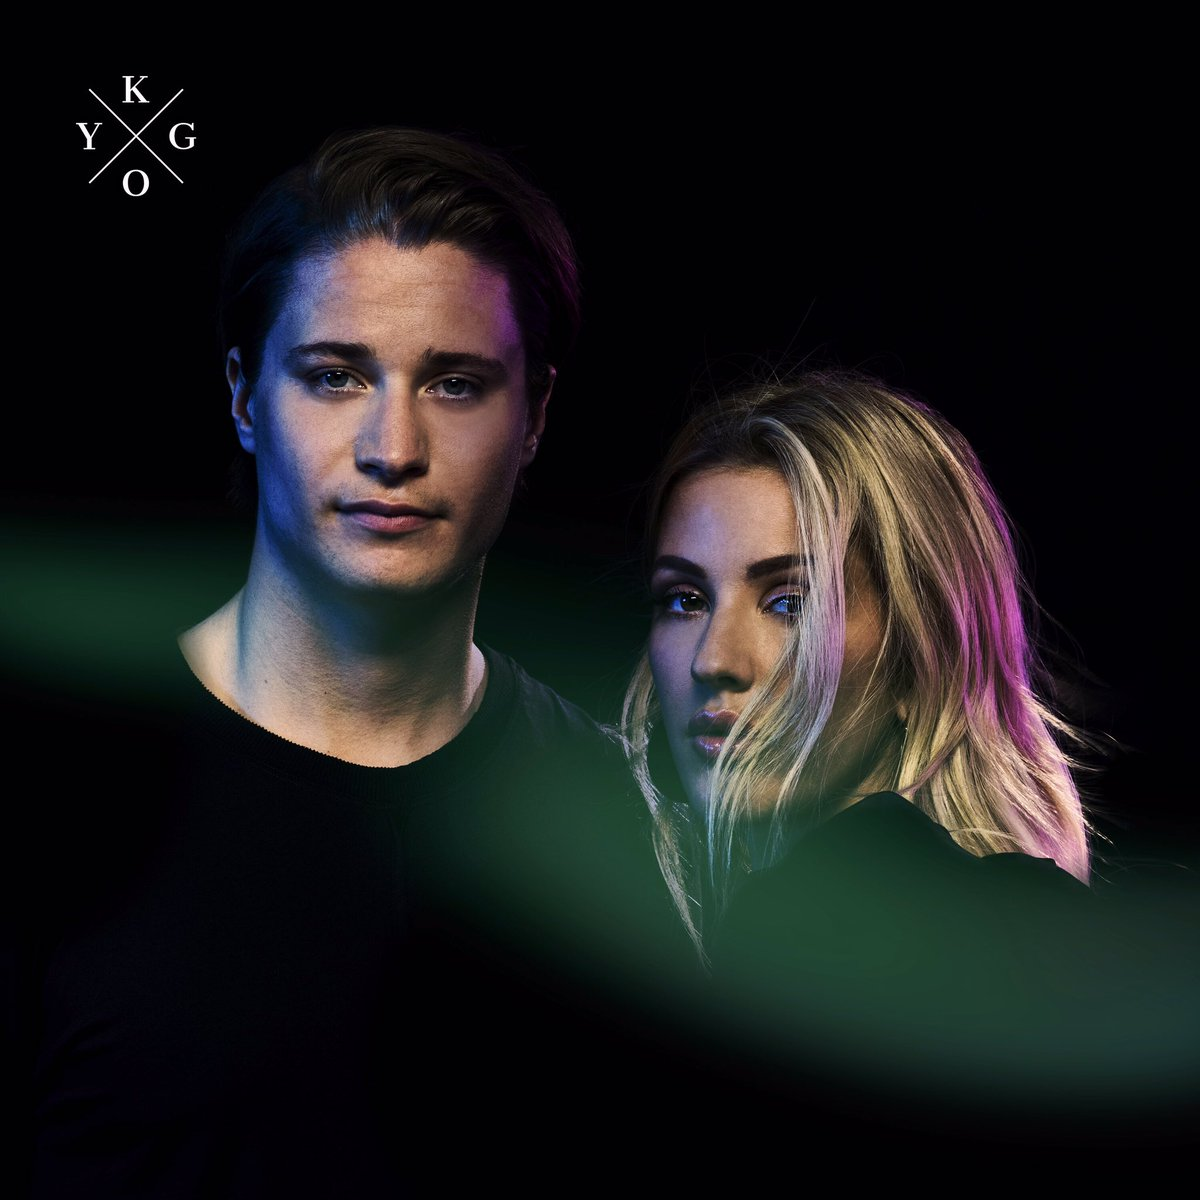 Ellie Goulding and Kygo Release